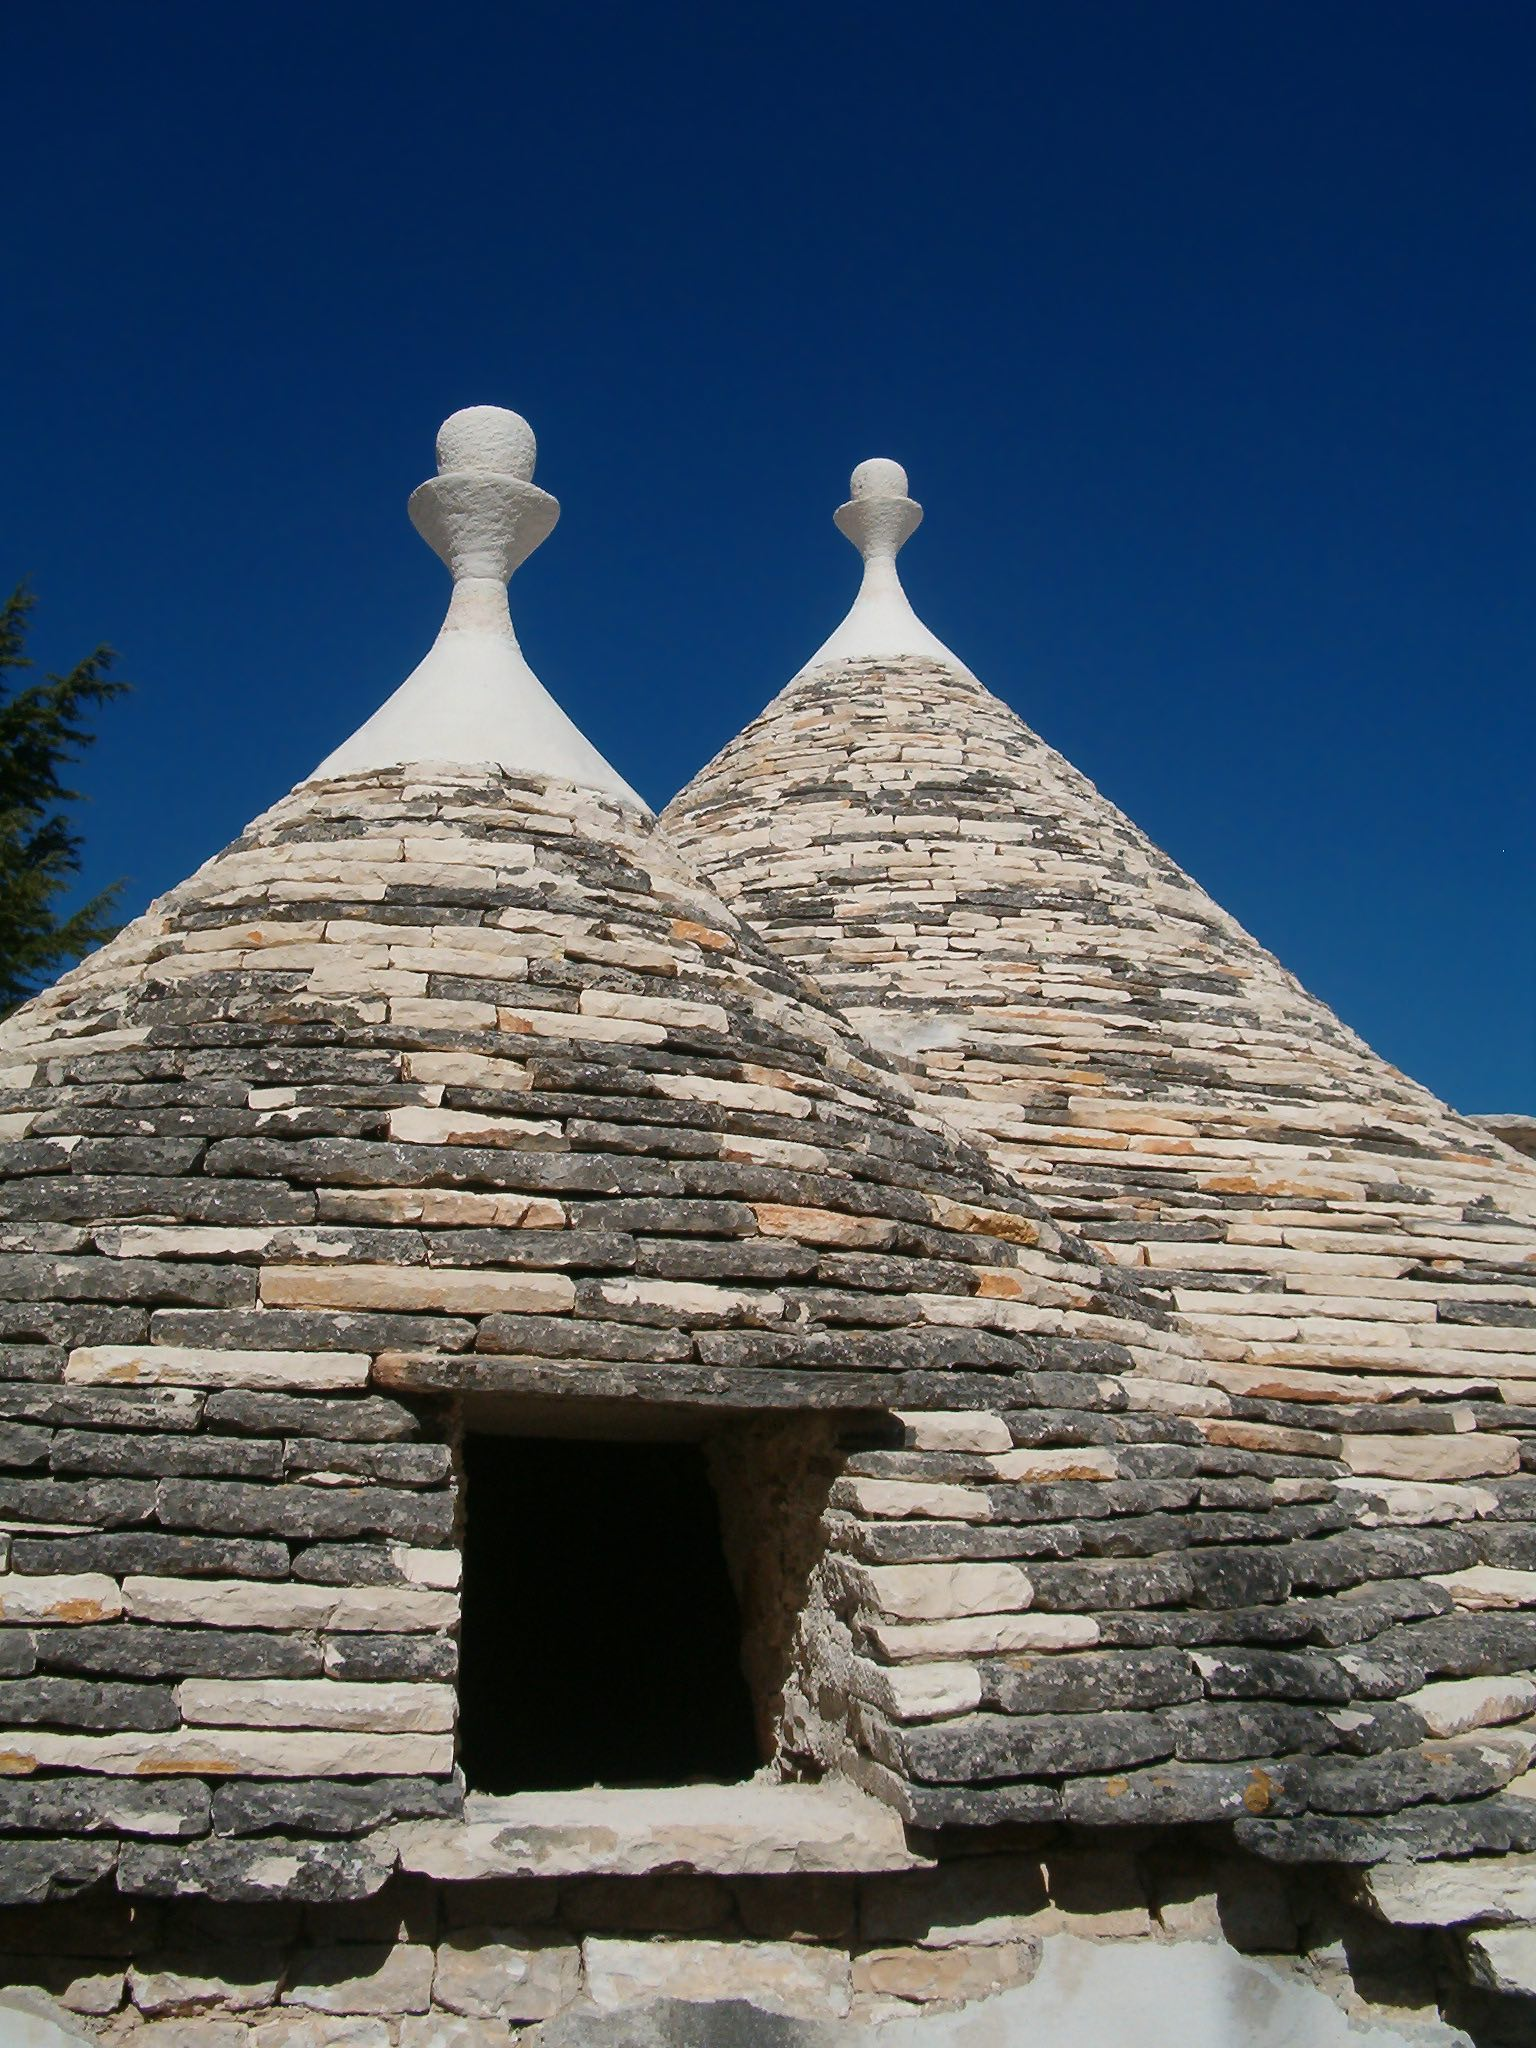 Trulli in Italy. Image: Wikimedia Commons